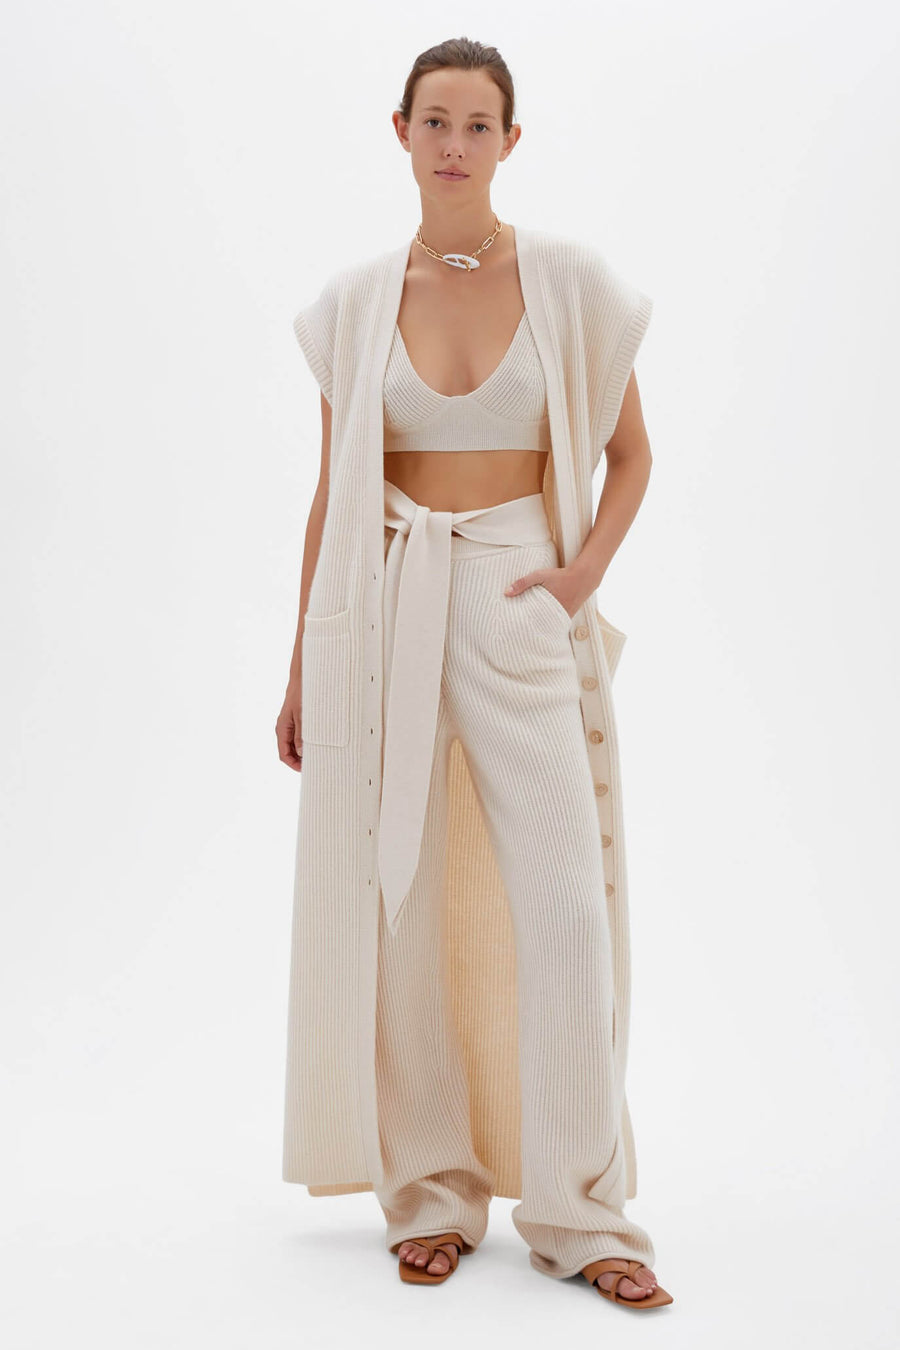 Jonathan Simkhai Selma Loungewear Long Vest in Ecru from The New Trend